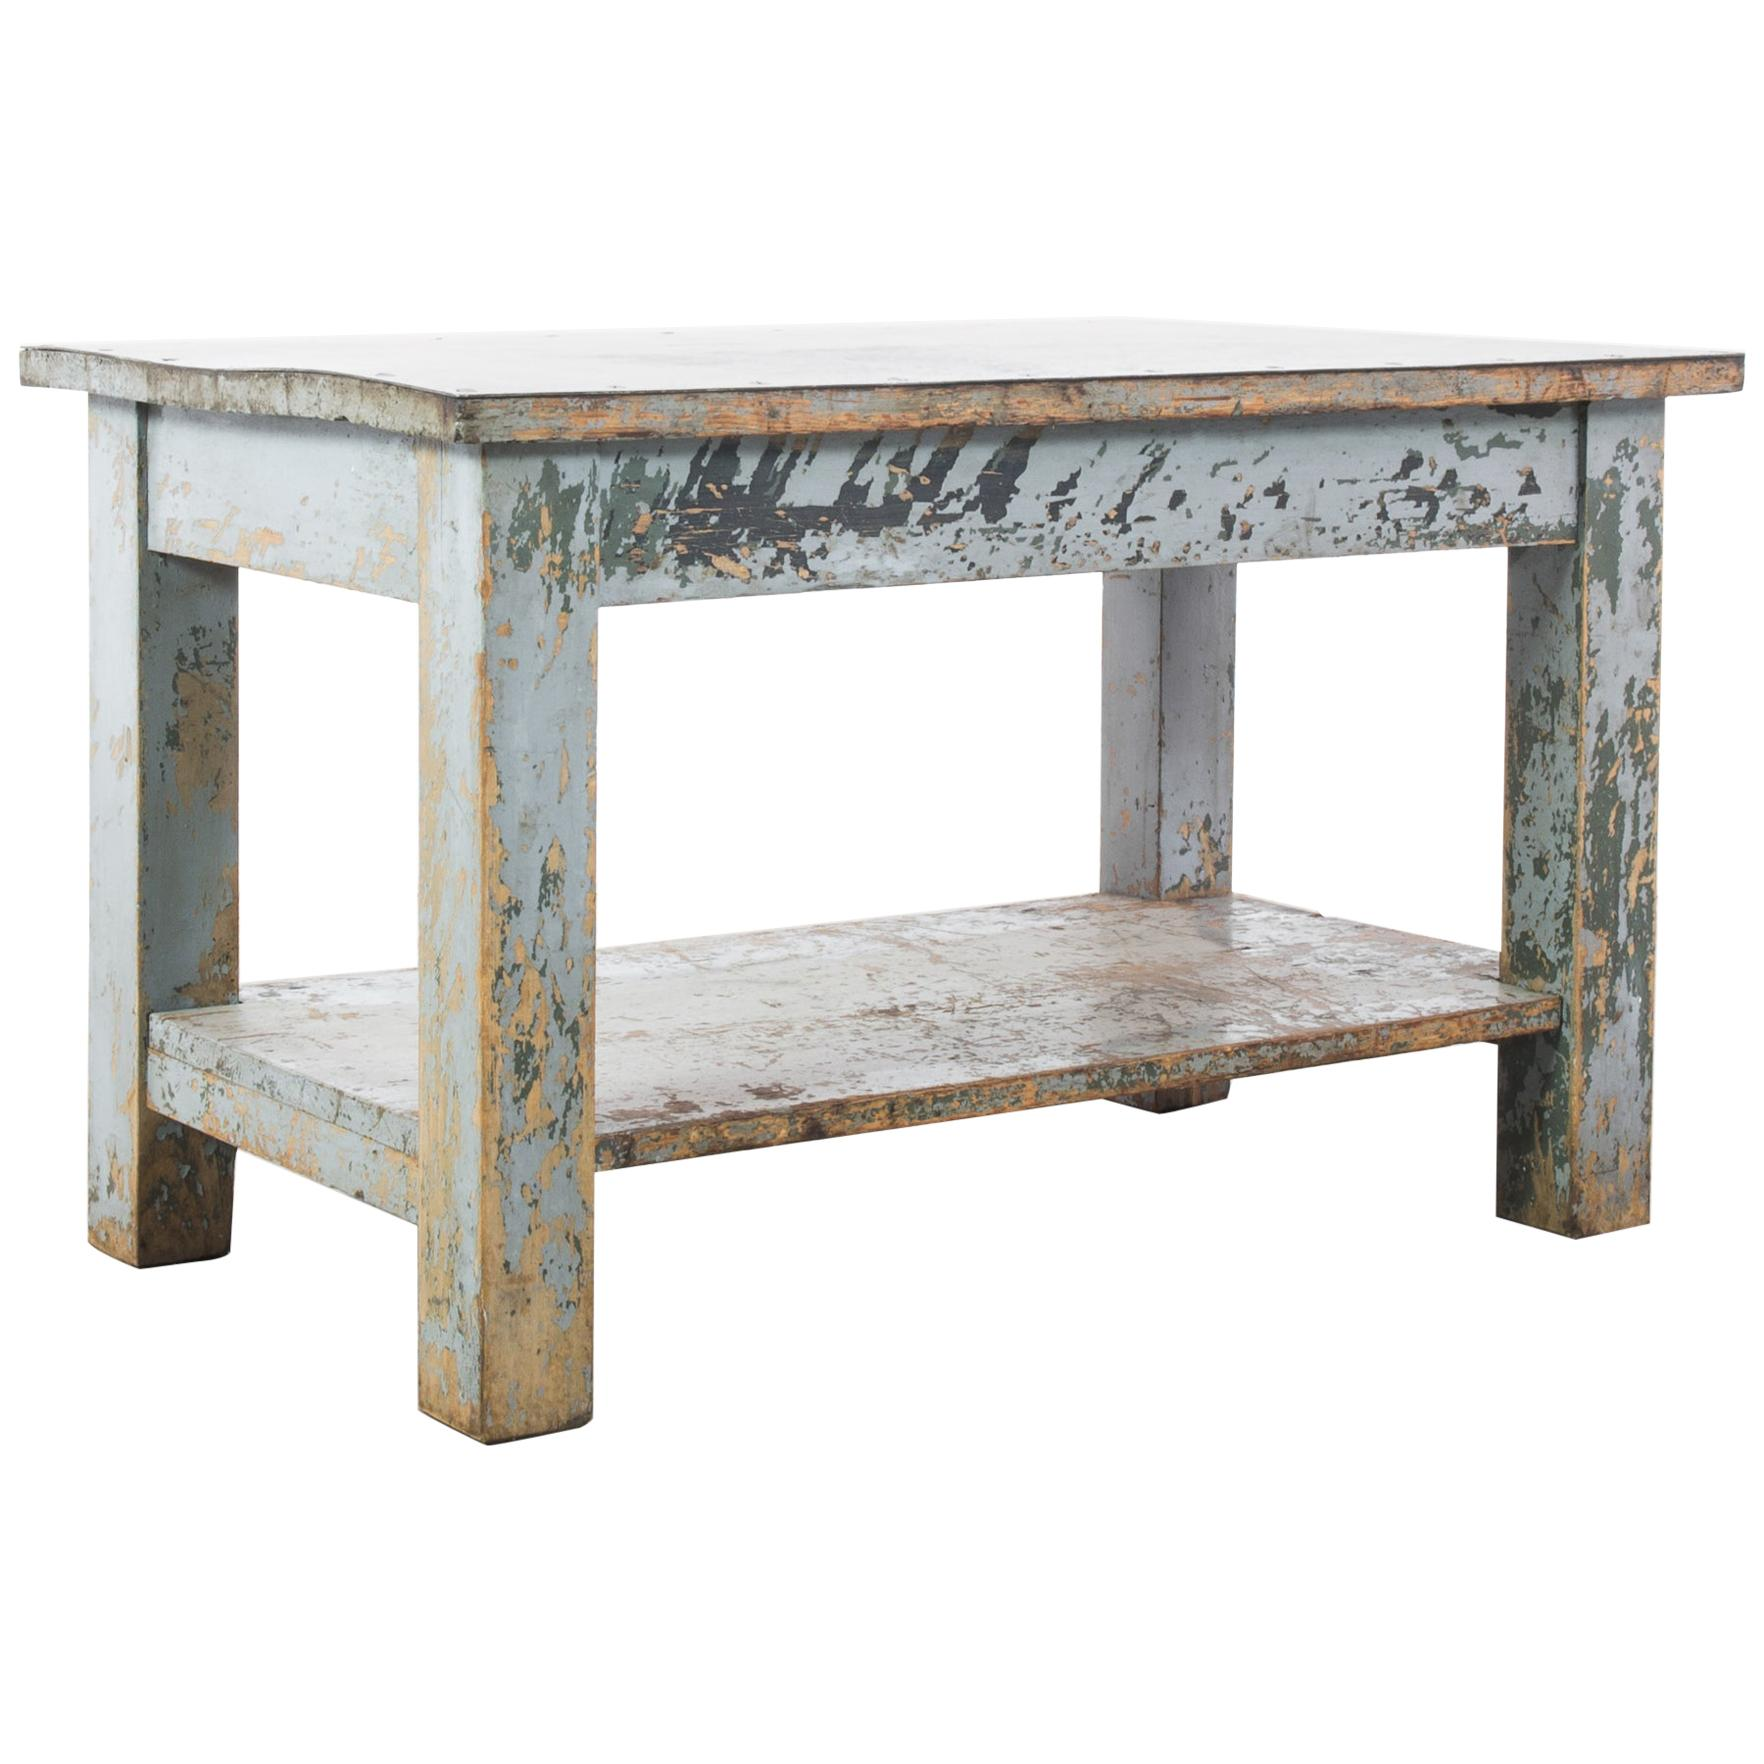 1950s French Industrial Table with Metal Top